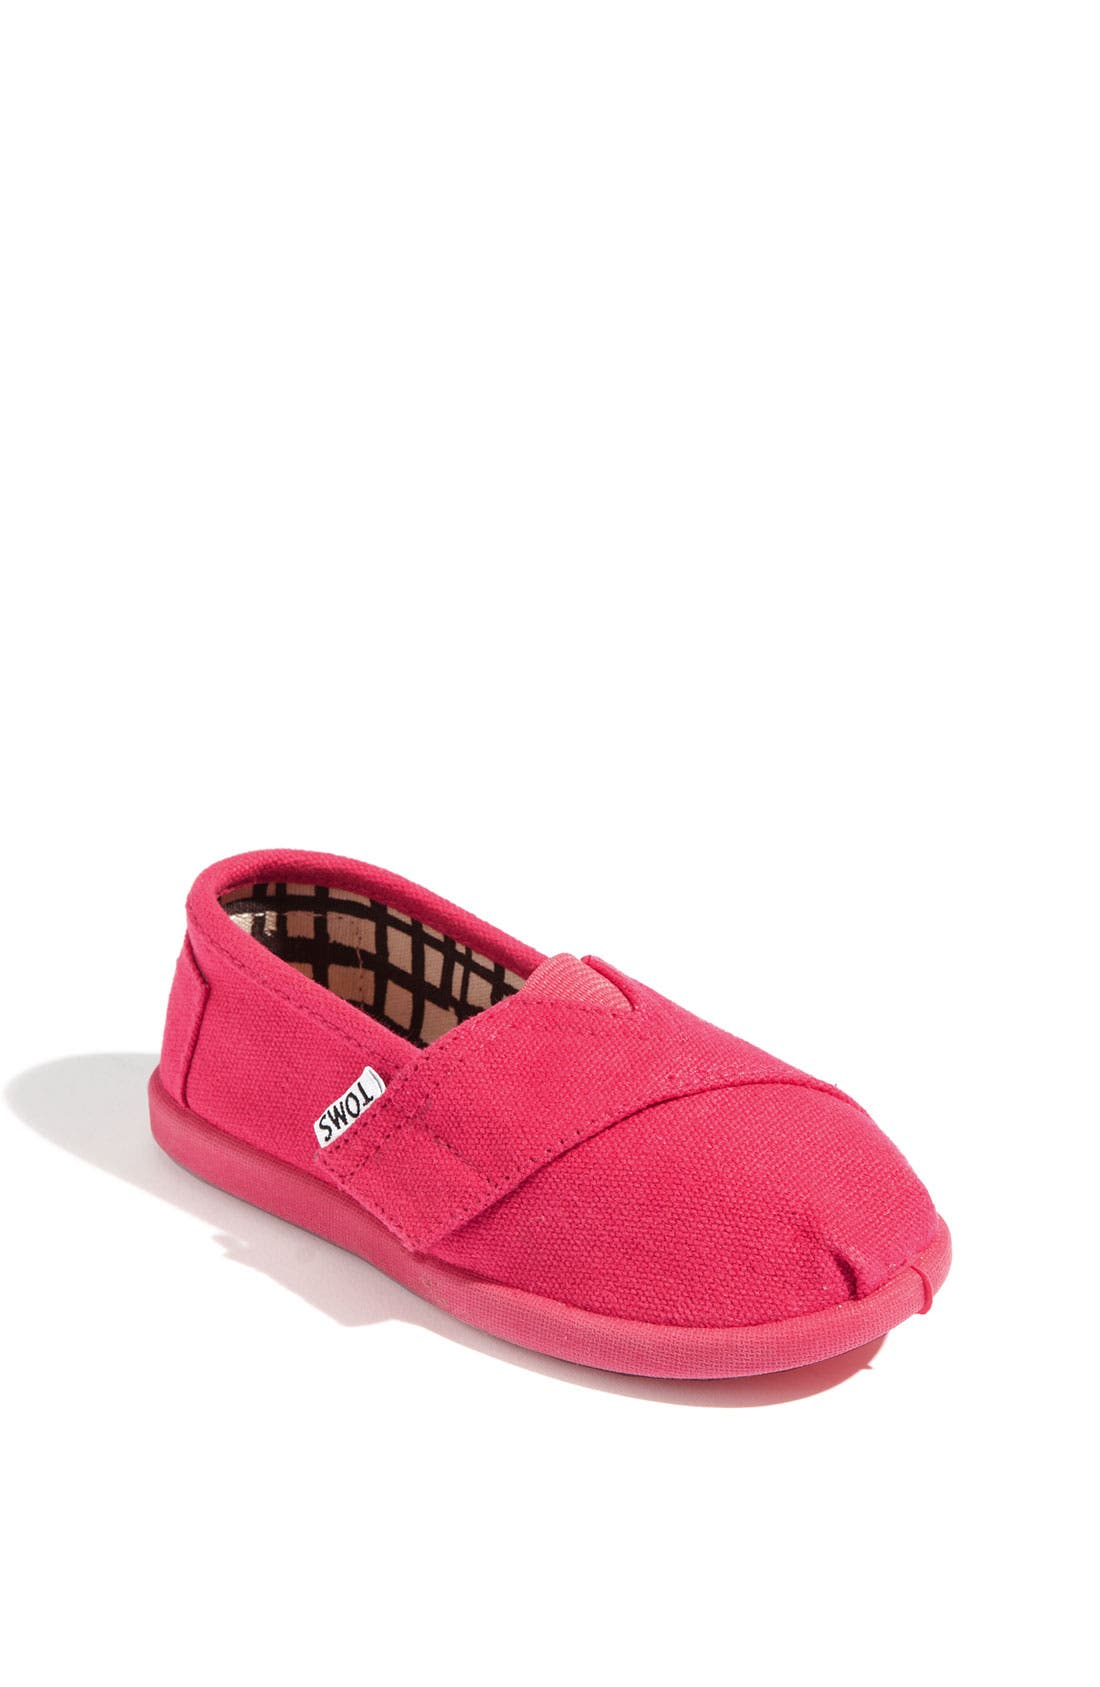 Alternate Image 1 Selected - TOMS 'Classic - Tiny' Canvas Slip-On (Baby, Walker & Toddler)